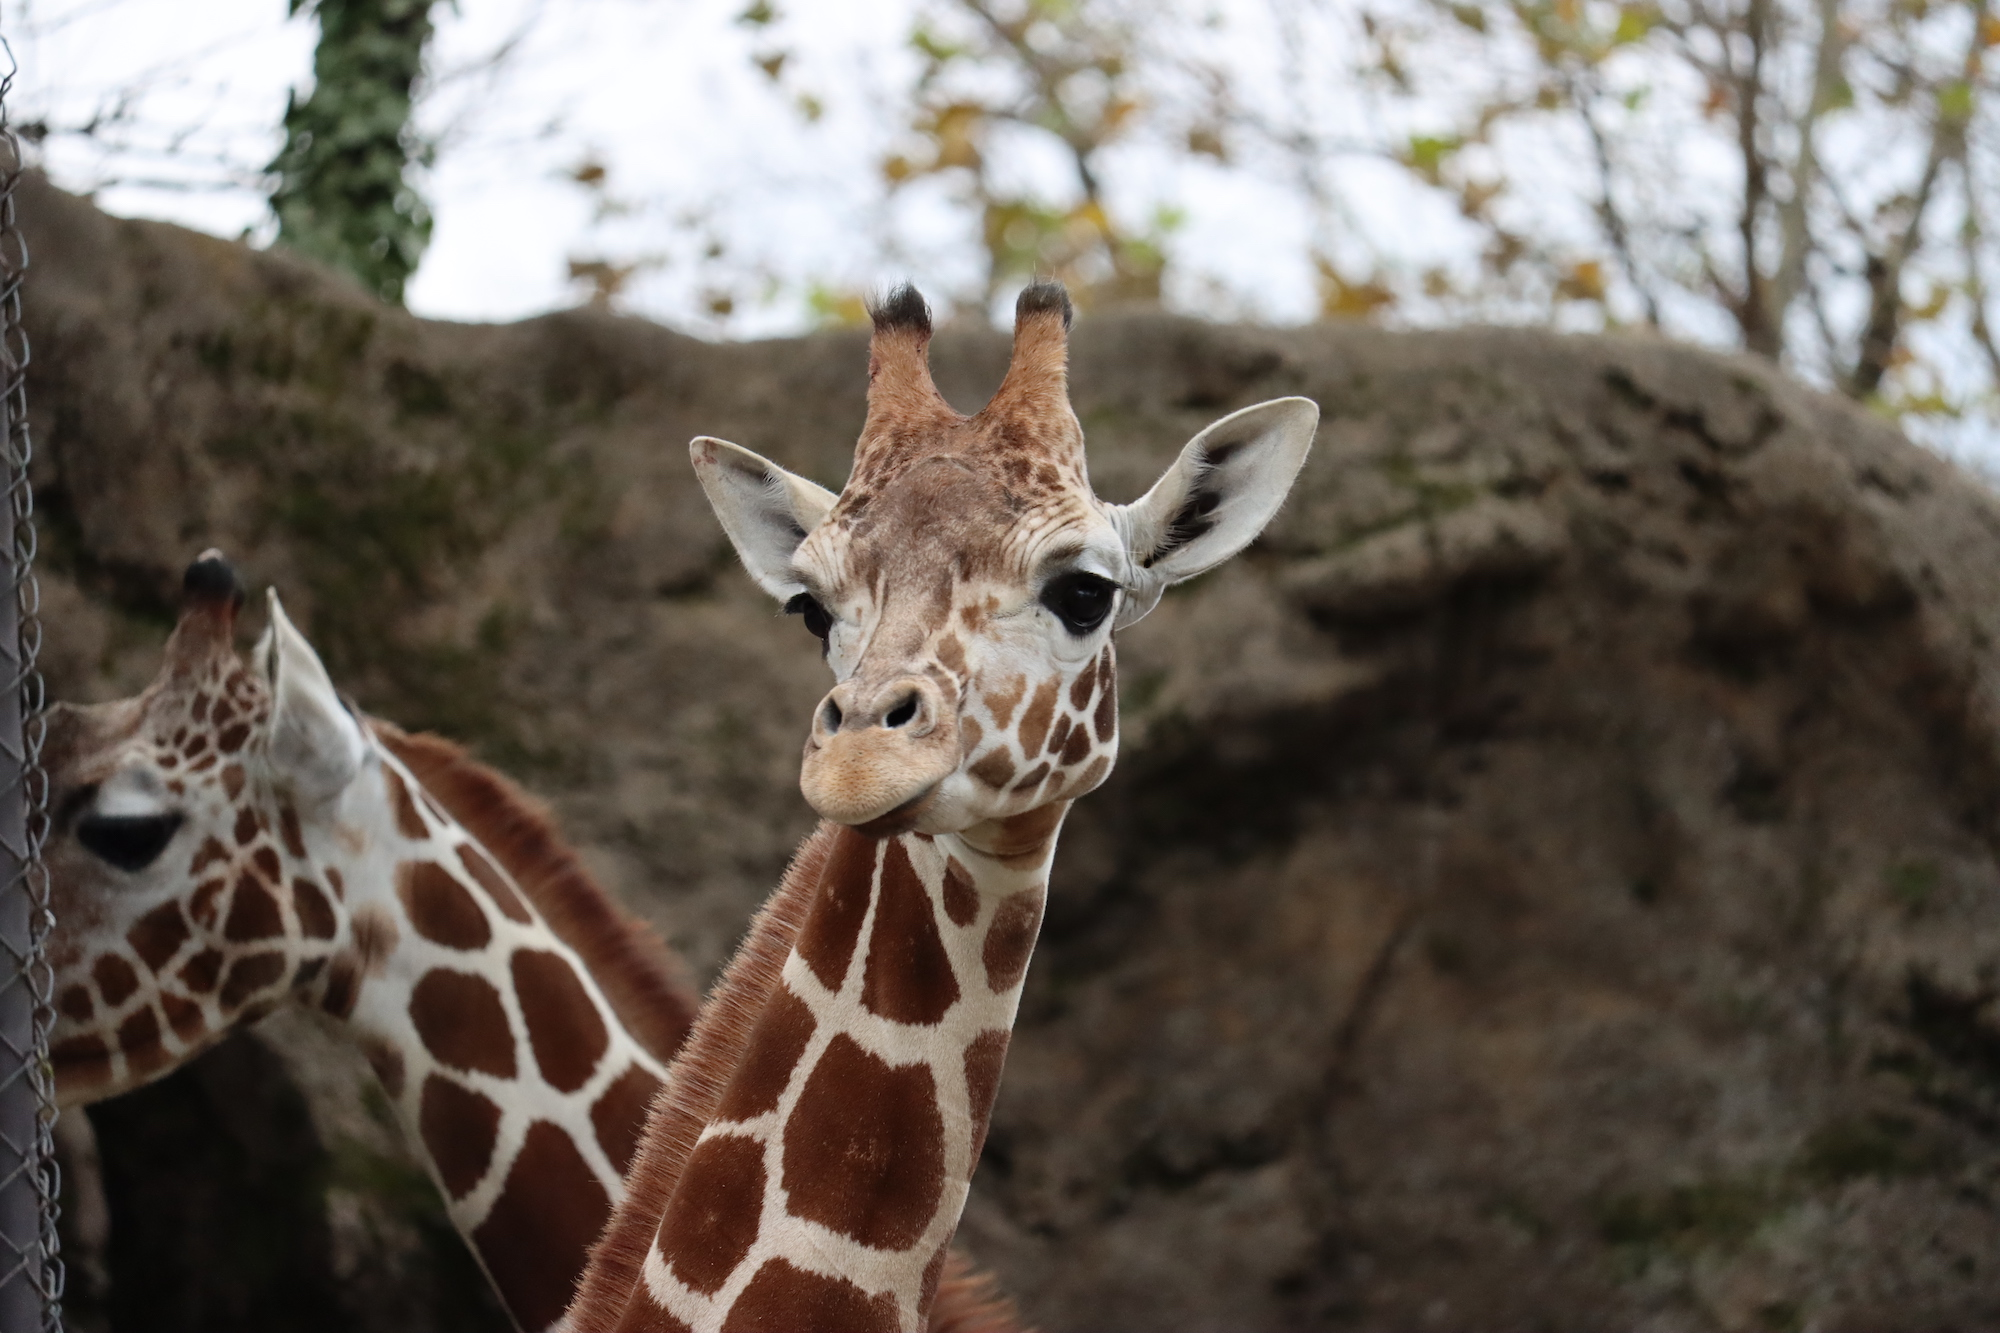 Bea, a 15-month-old female giraffe, is pictured at the Philadelphia Zoo.